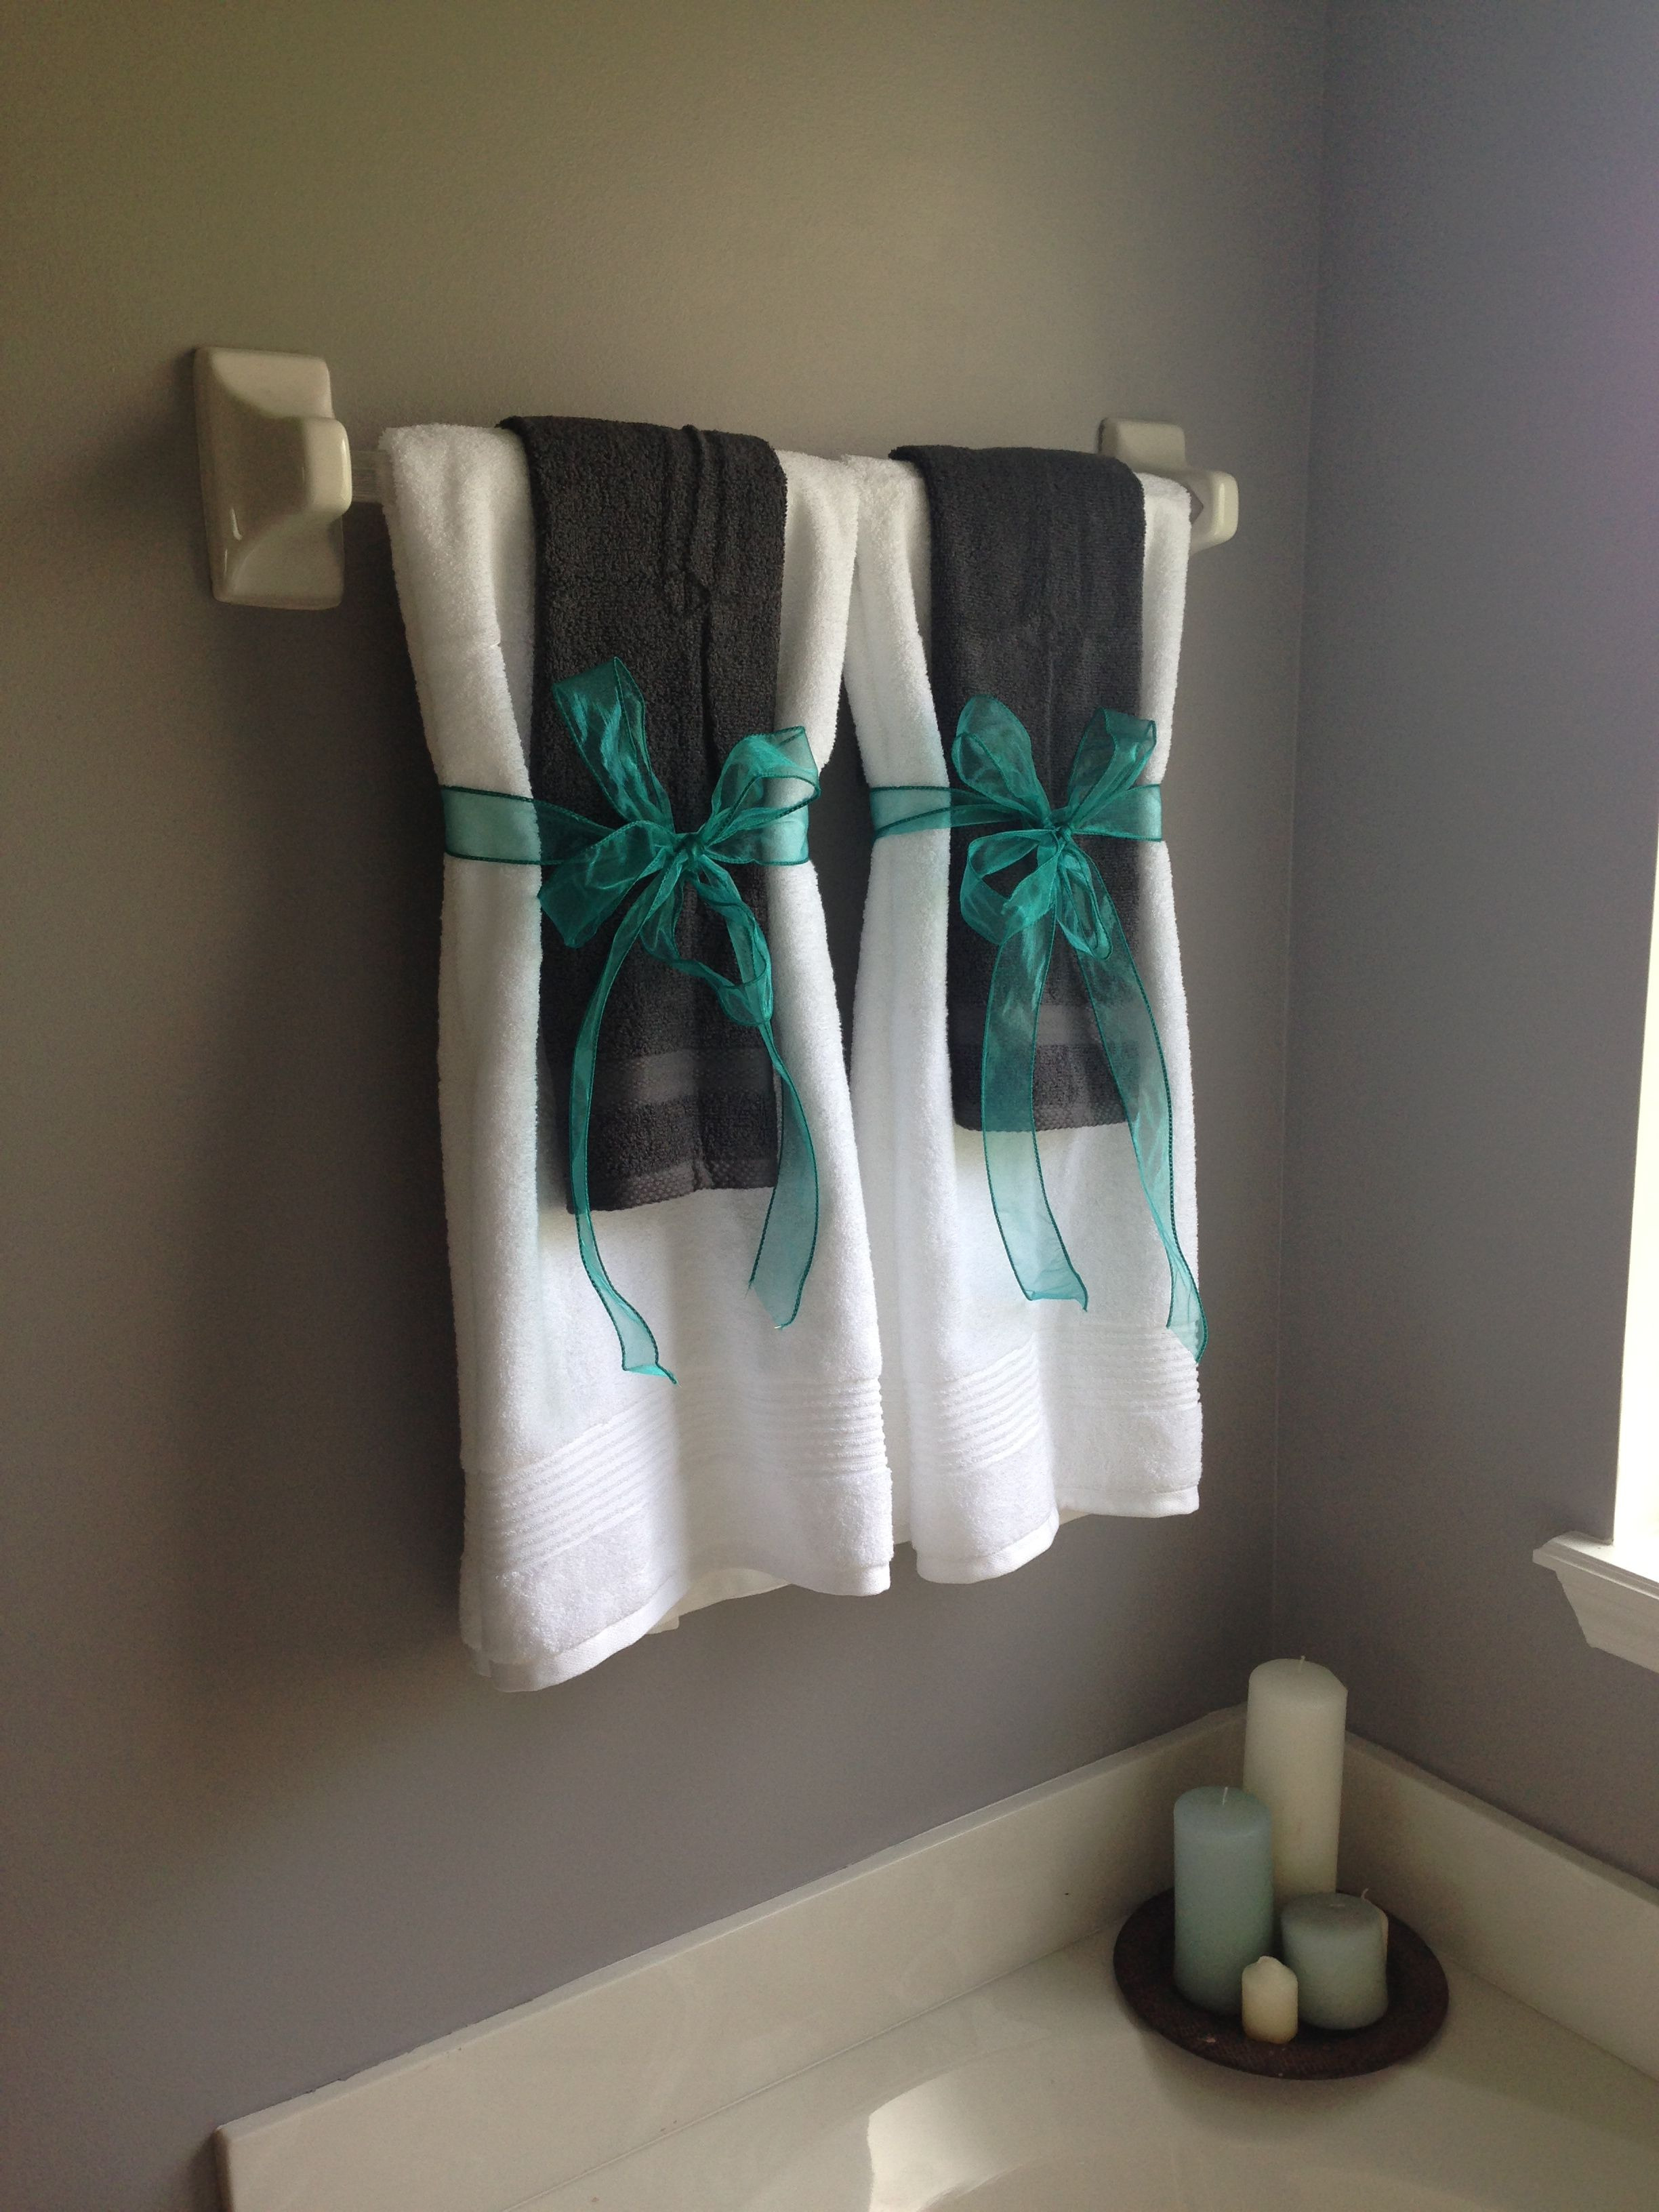 Towel Decoration for Bathroom New so No One Uses the Decorative towels